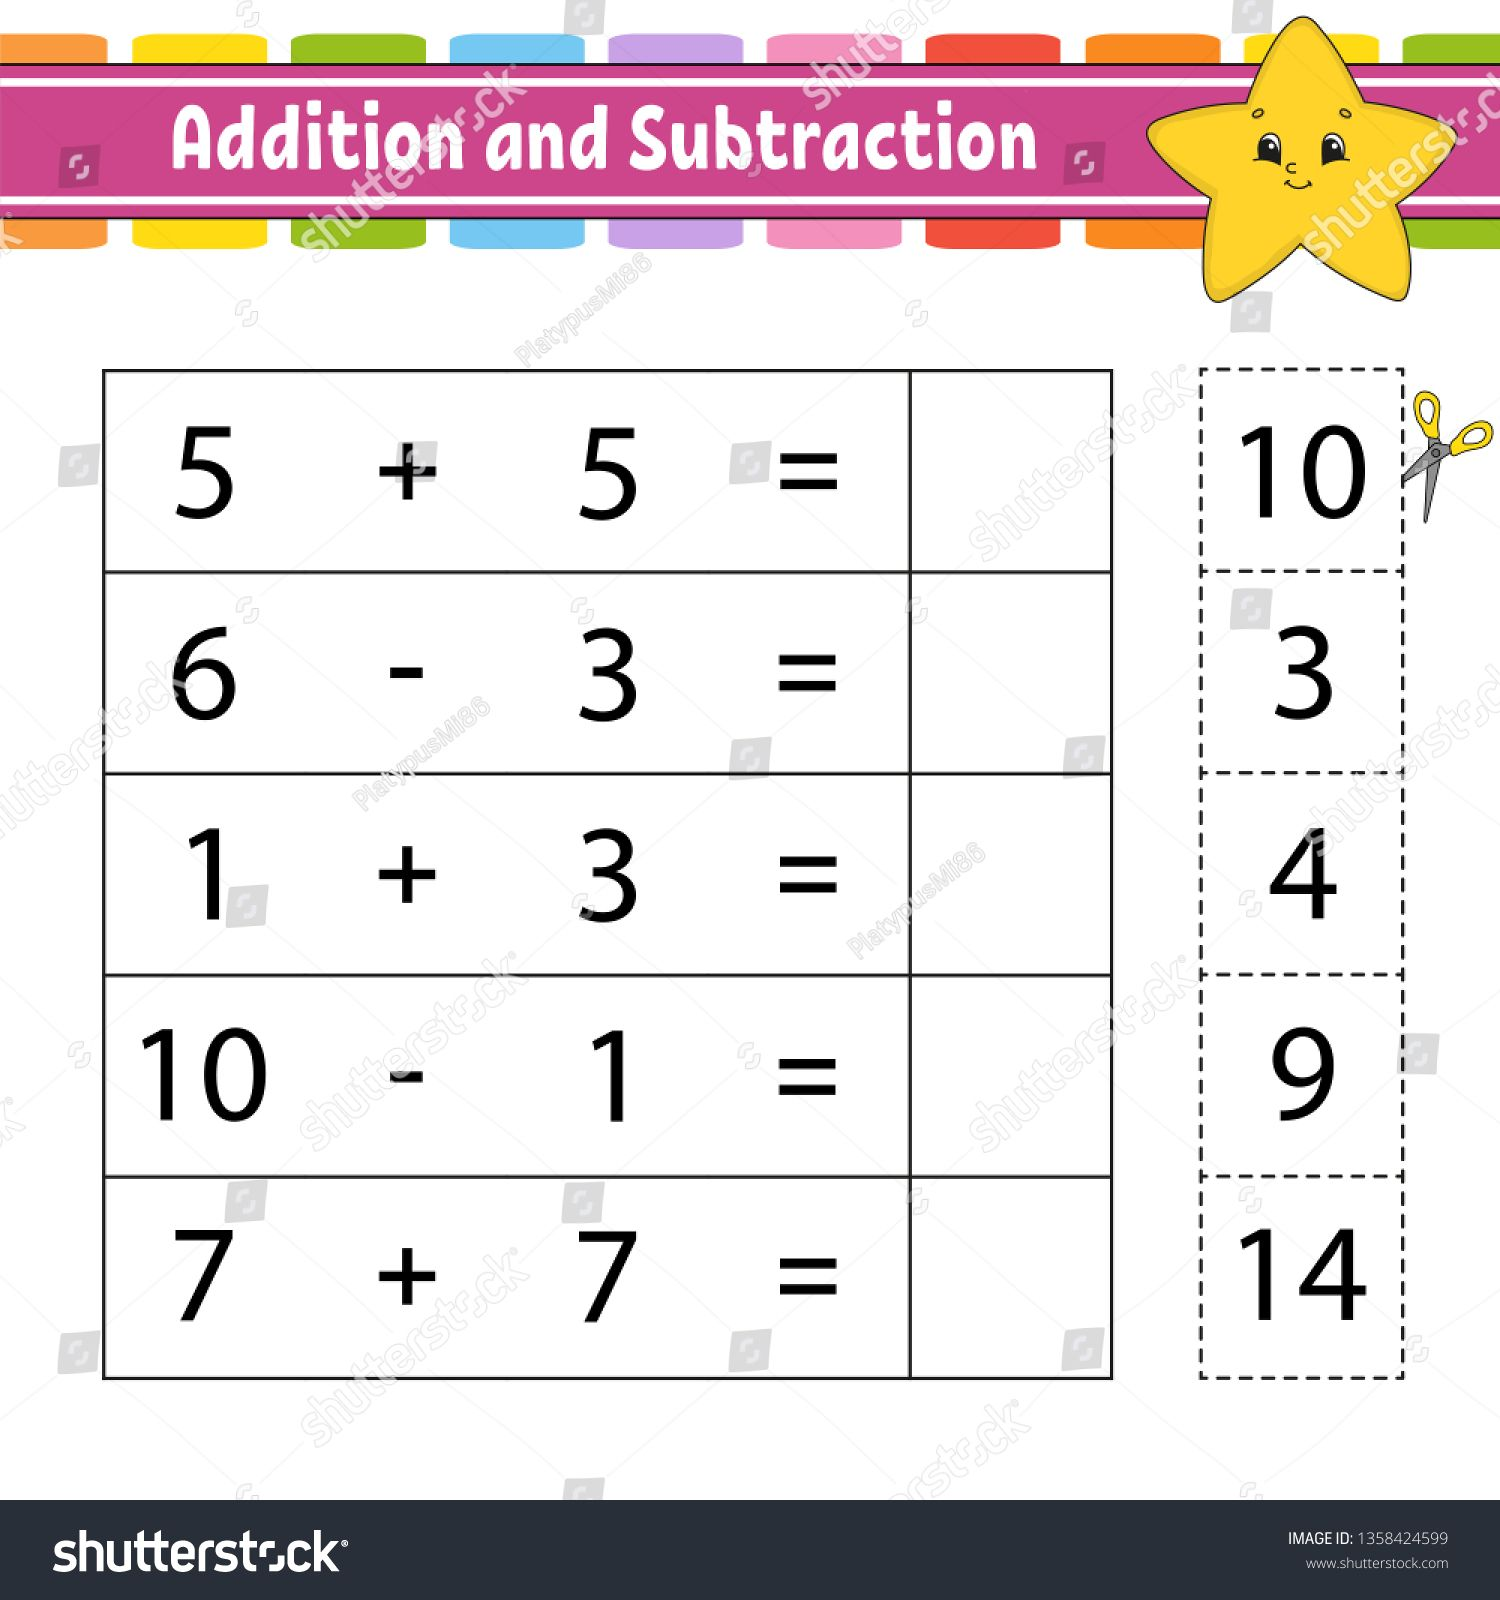 Addition And Subtraction Task For Kids Education Developing Worksheet Activity Page Game For Children Addition And Subtraction Subtraction Kids Education Addition and subtraction scientific